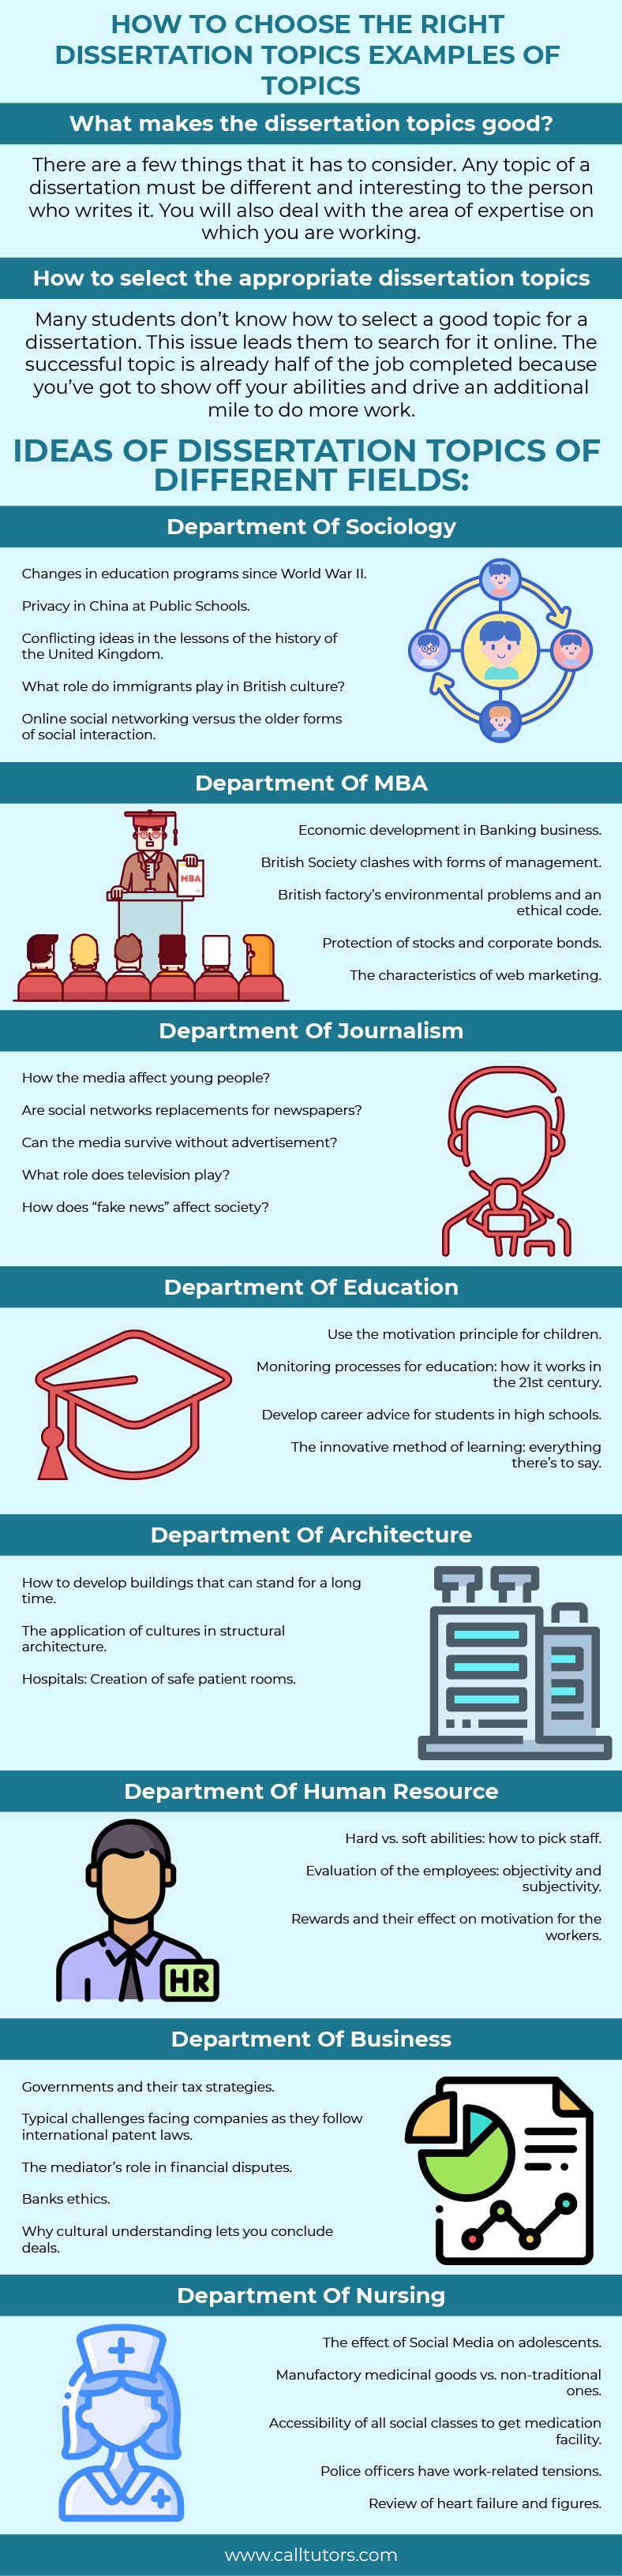 How To Choose The Right Dissertation Topic Example Of Infographic Media Topics